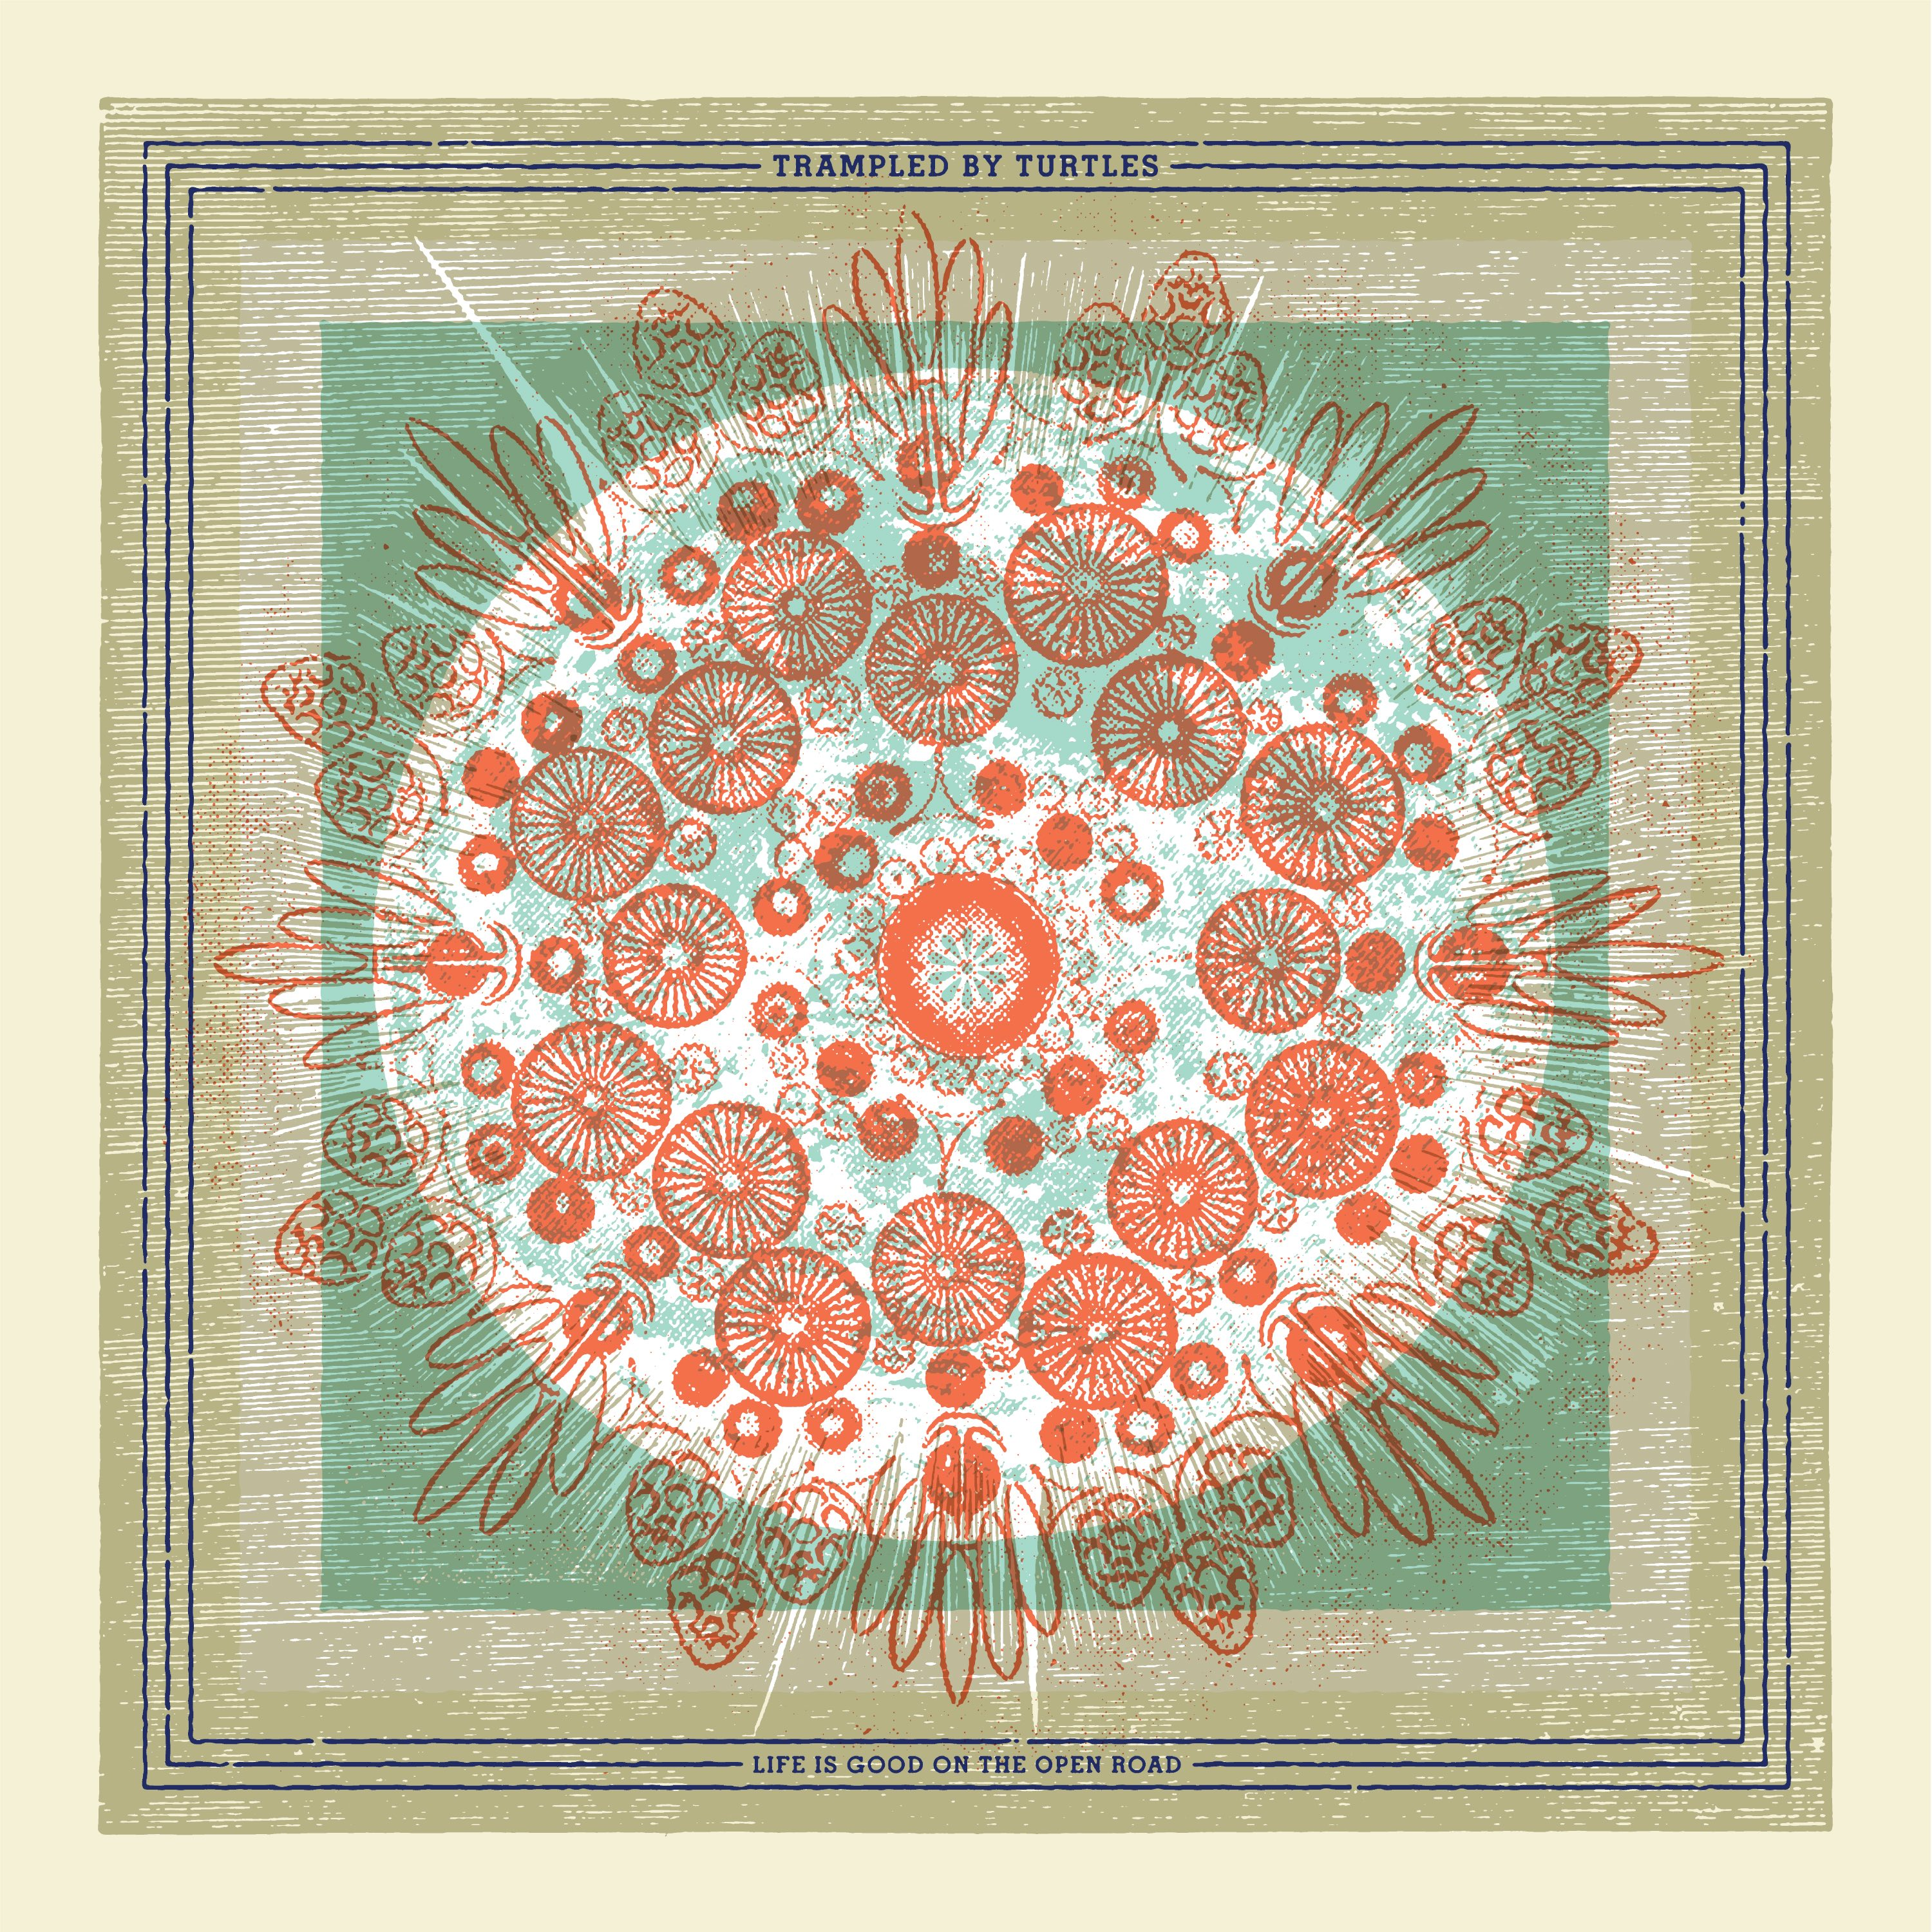 REVIEW: Trampled by Turtles'